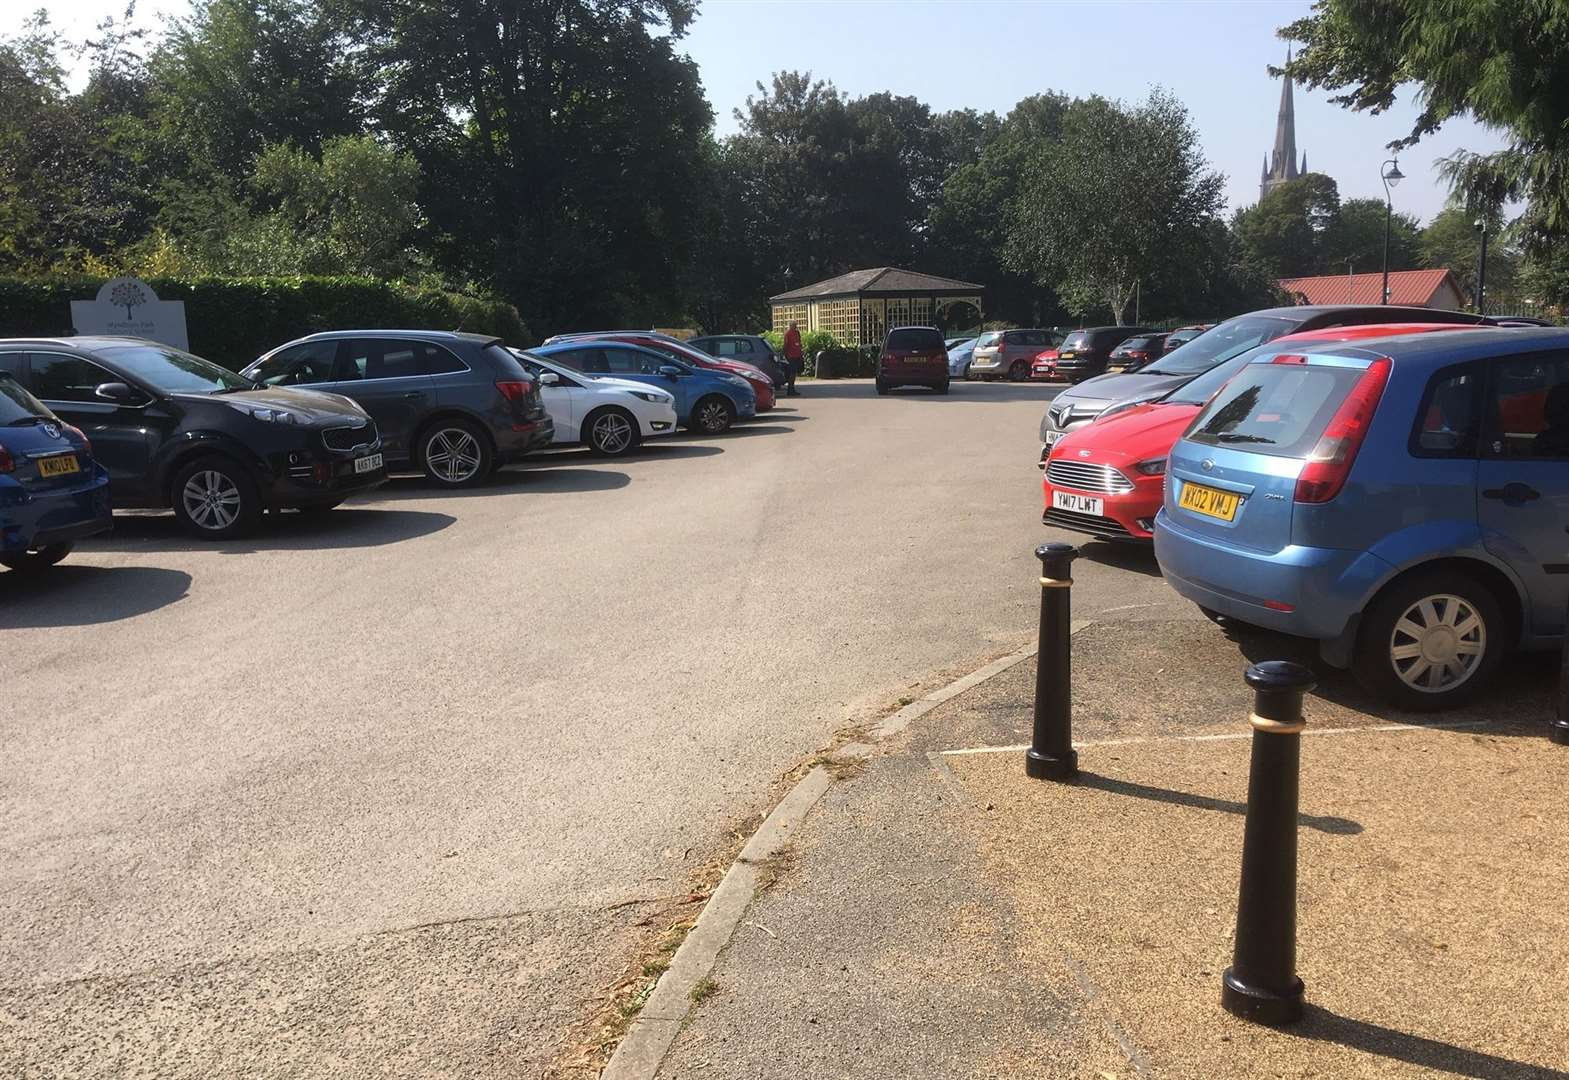 Extra car parking to be provided at two Grantham parks